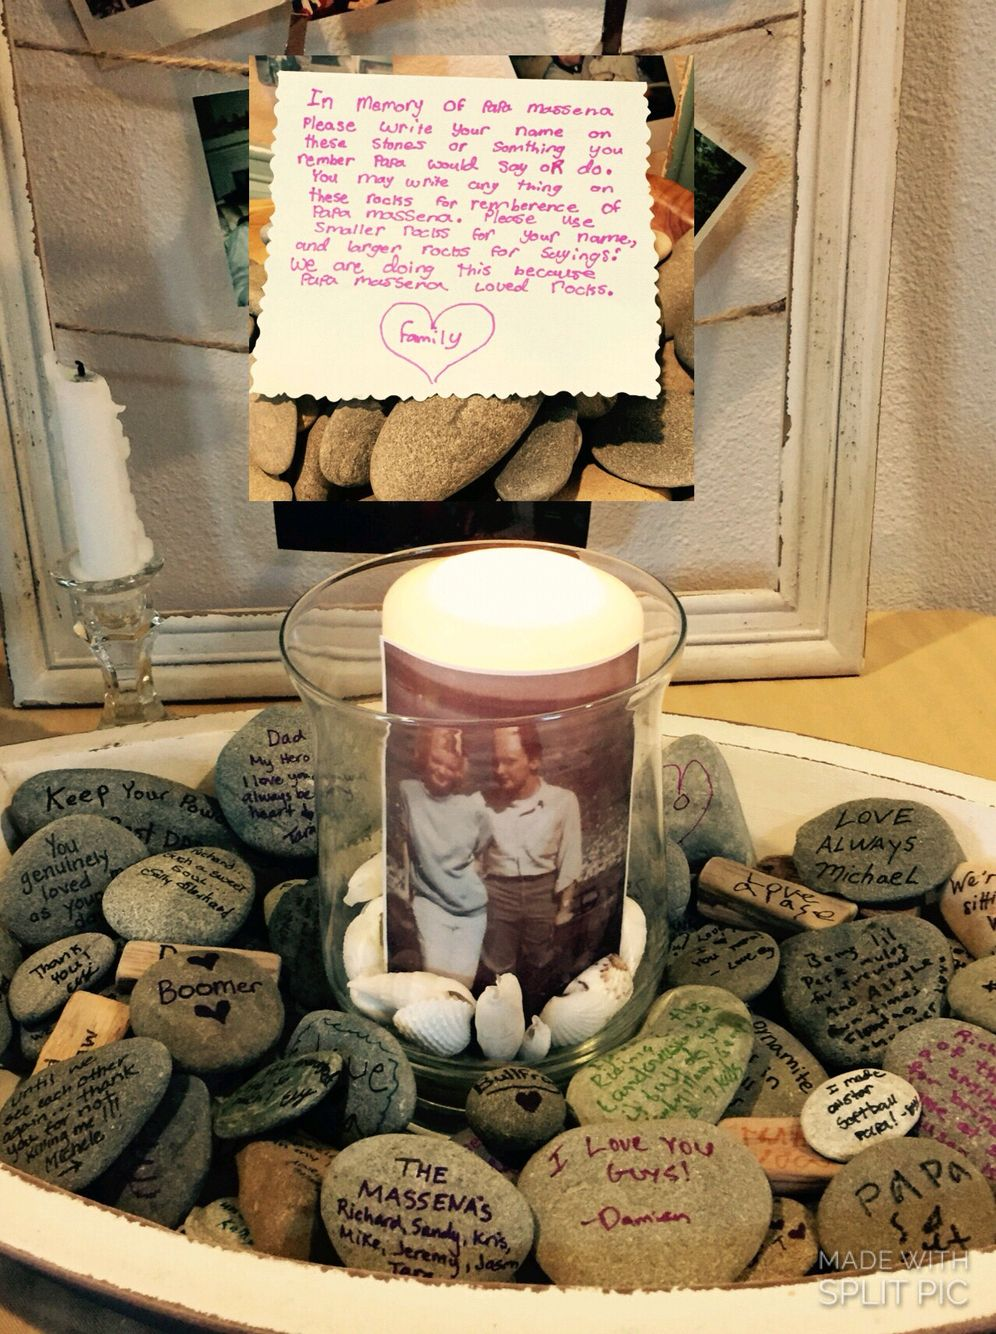 Pebbles Can Be Used In Place Of A Traditional Guestbook And Can Be Displayed In The Home For Years To Come Memorial Stones Funeral Memorial Funeral Reception